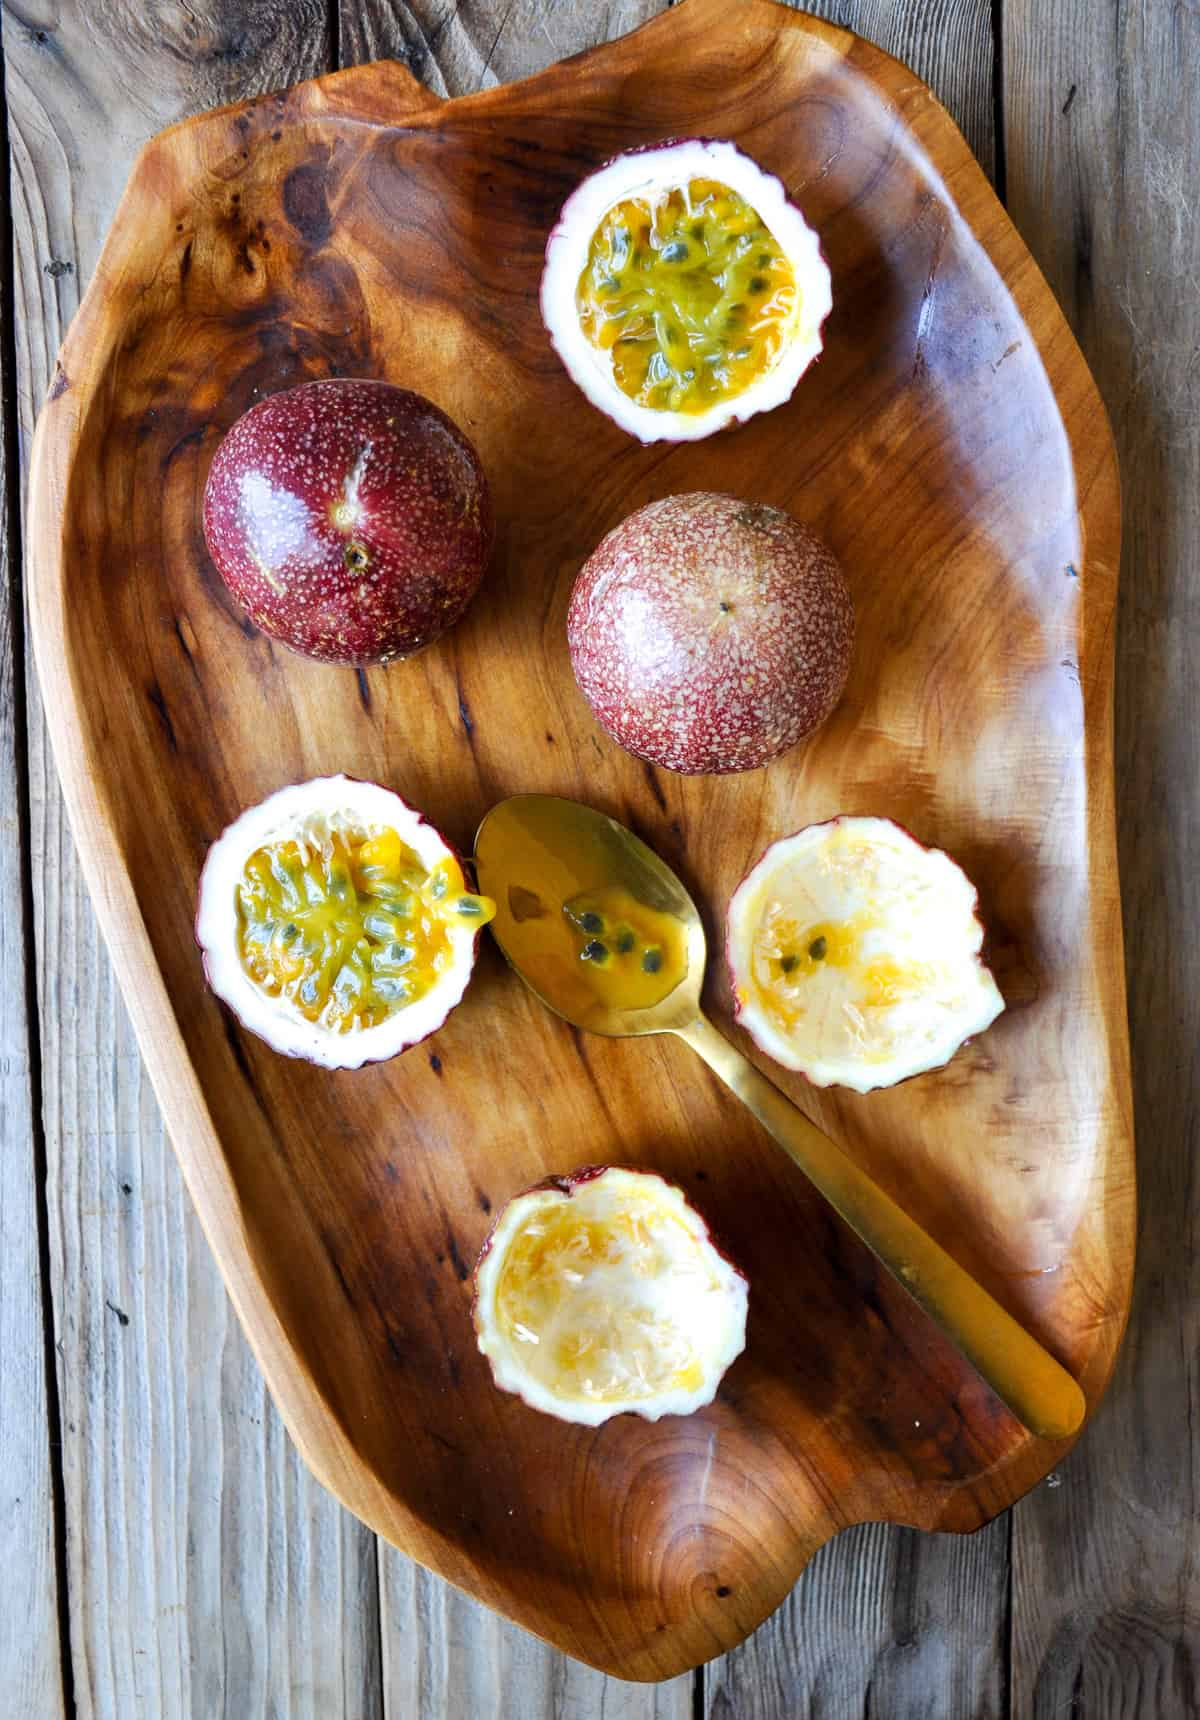 Passion Fruit from California